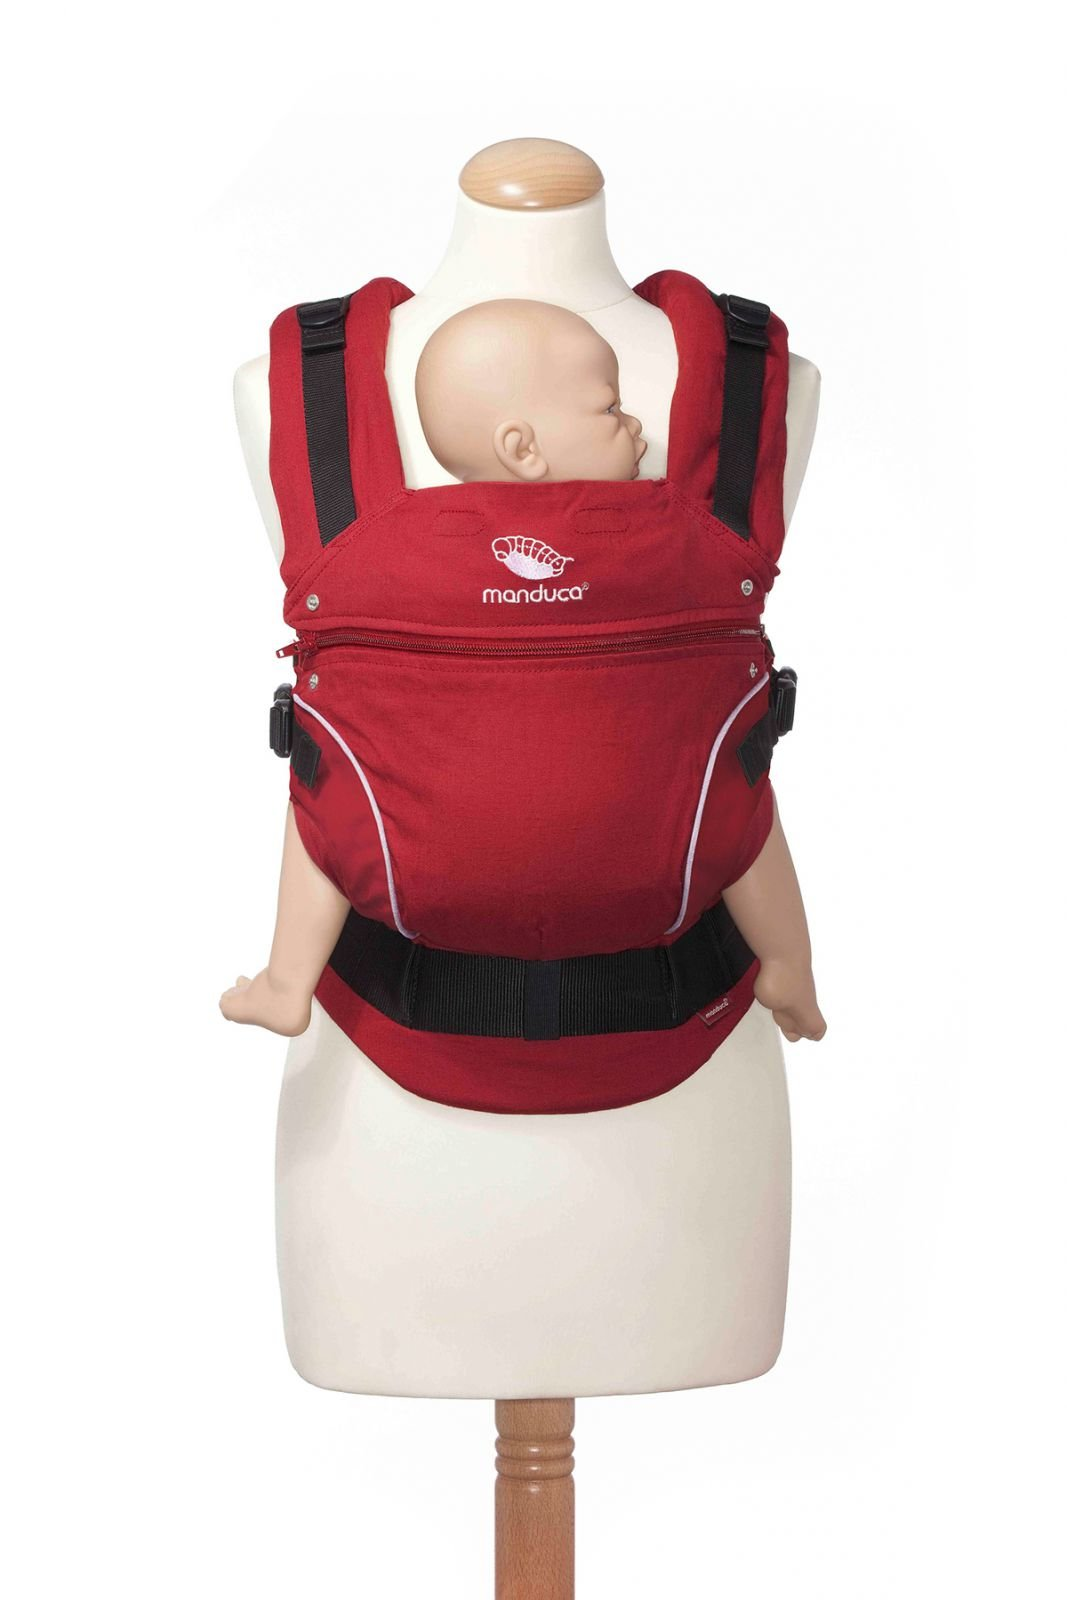 Manduca 3-in-1 Pure Cotton Baby Carrier (Chili Red) Manduca 3-in-1 soft structured baby carrier that supports baby in the healthiest position Made from 100% organic cotton Suitable from newborn to pre-schooler taking a weight of 45lbs. 7